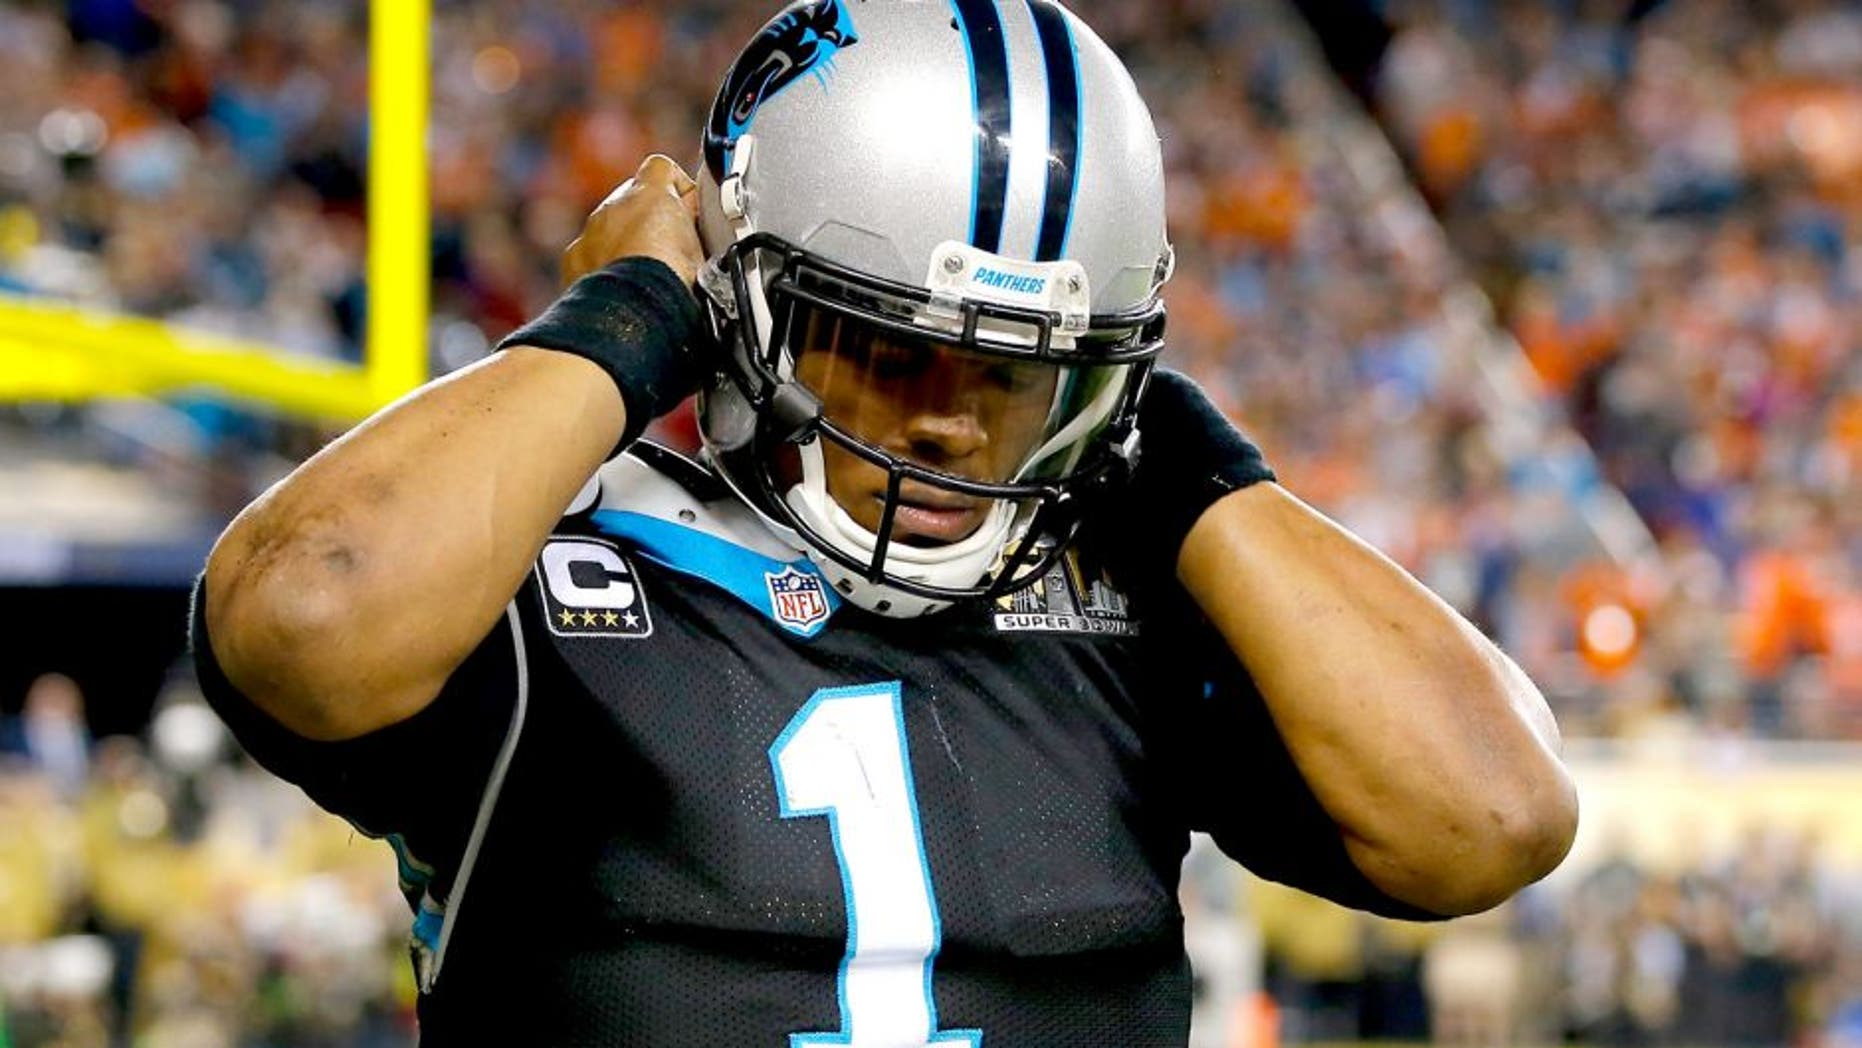 SANTA CLARA, CA - FEBRUARY 07: Cam Newton #1 of the Carolina Panthers reacts after being hit in the fourth quarter of Super Bowl 50 against the Denver Broncos at Levi's Stadium on February 7, 2016 in Santa Clara, California. (Photo by Kevin C. Cox/Getty Images)